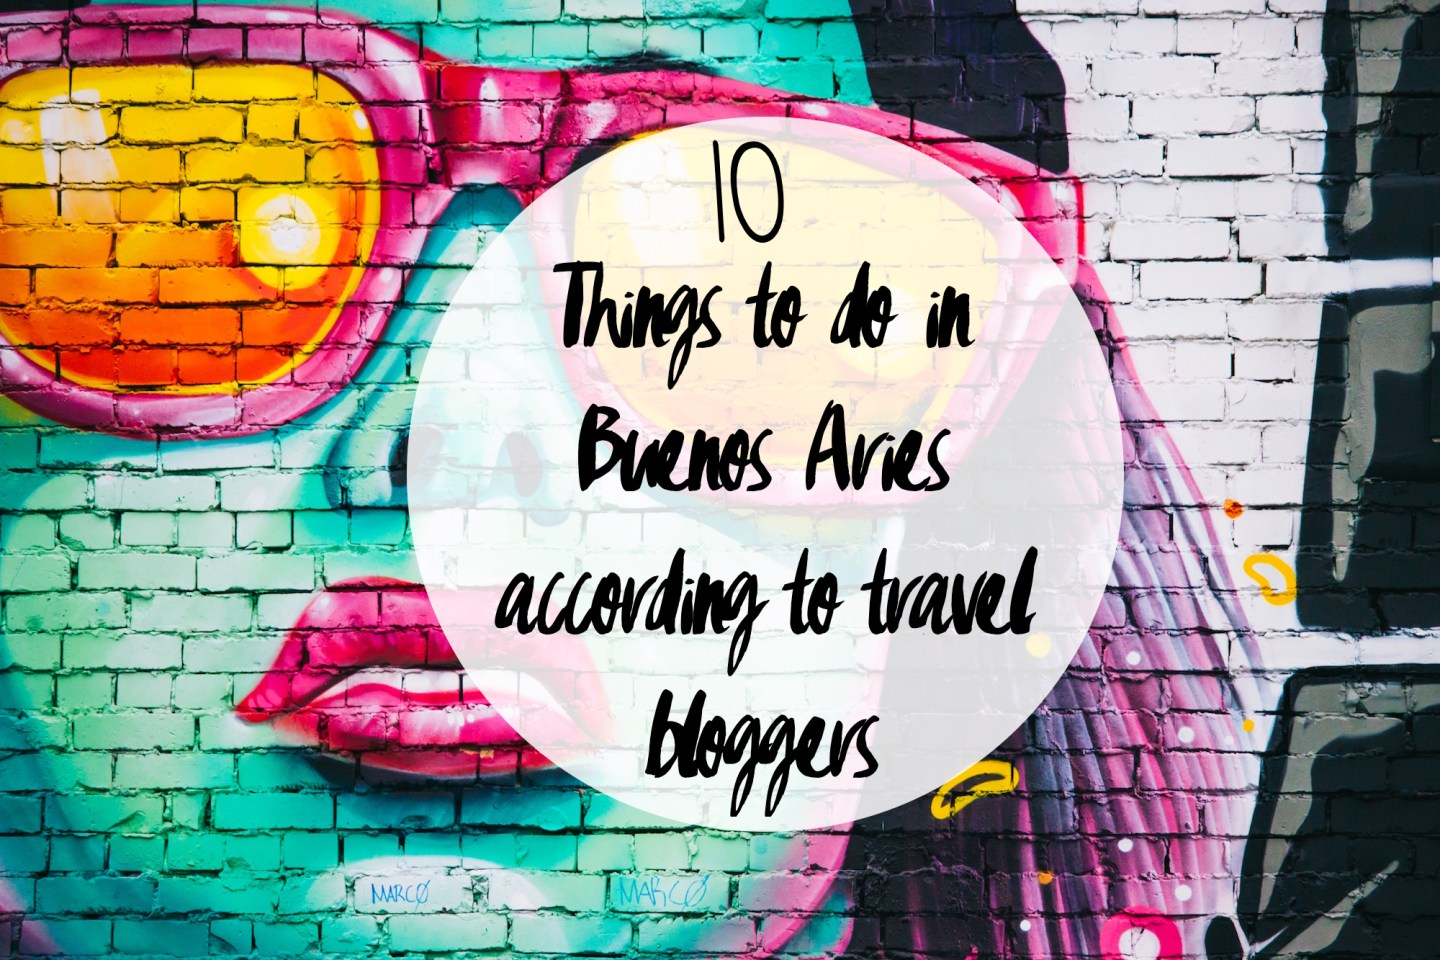 10 Things To Do in Buenos Aires According To 6 Travel Bloggers